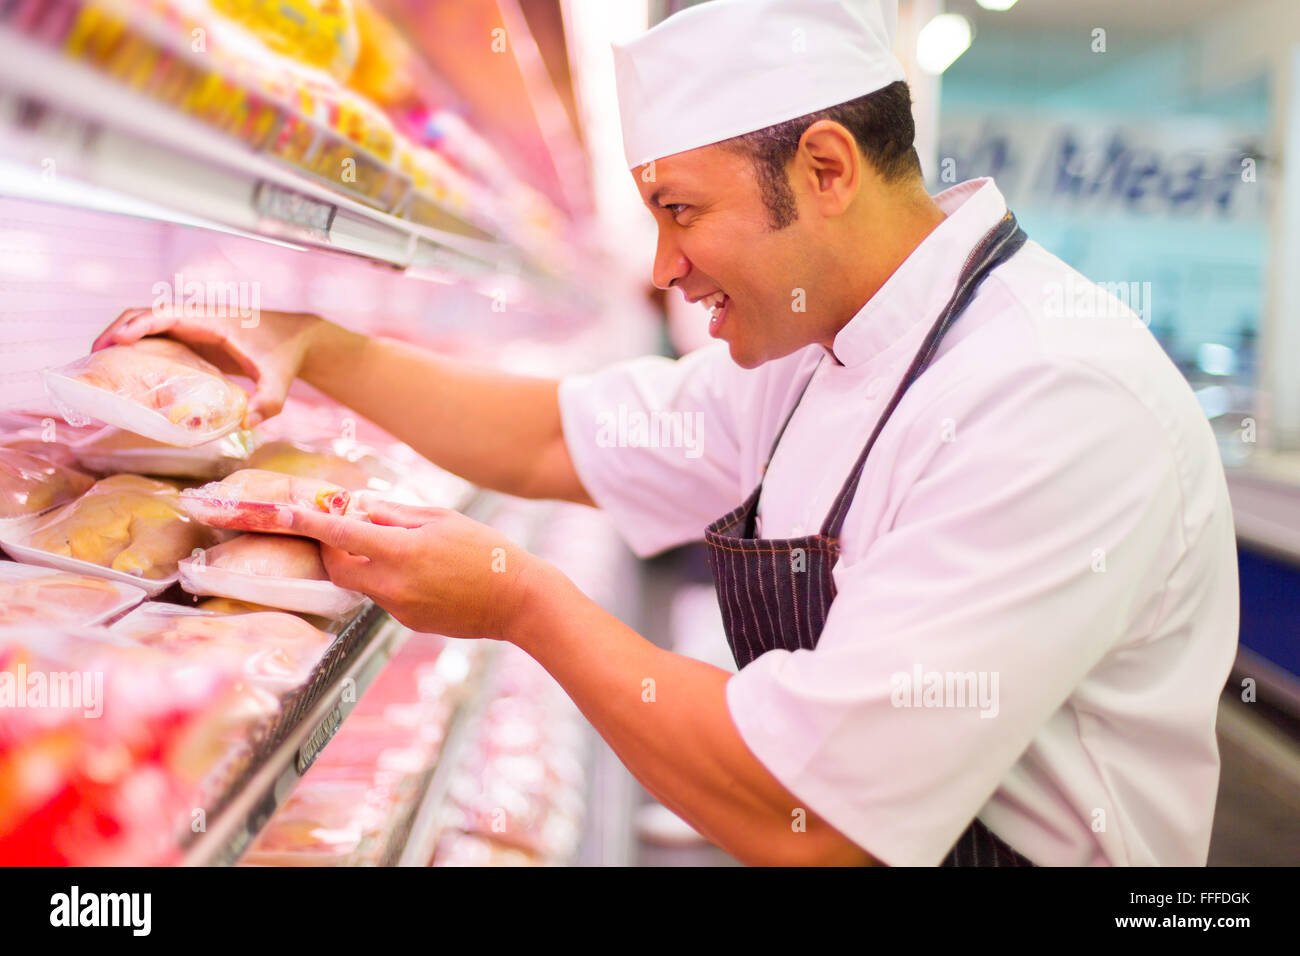 happy middle aged butcher working in butchery - Stock Image